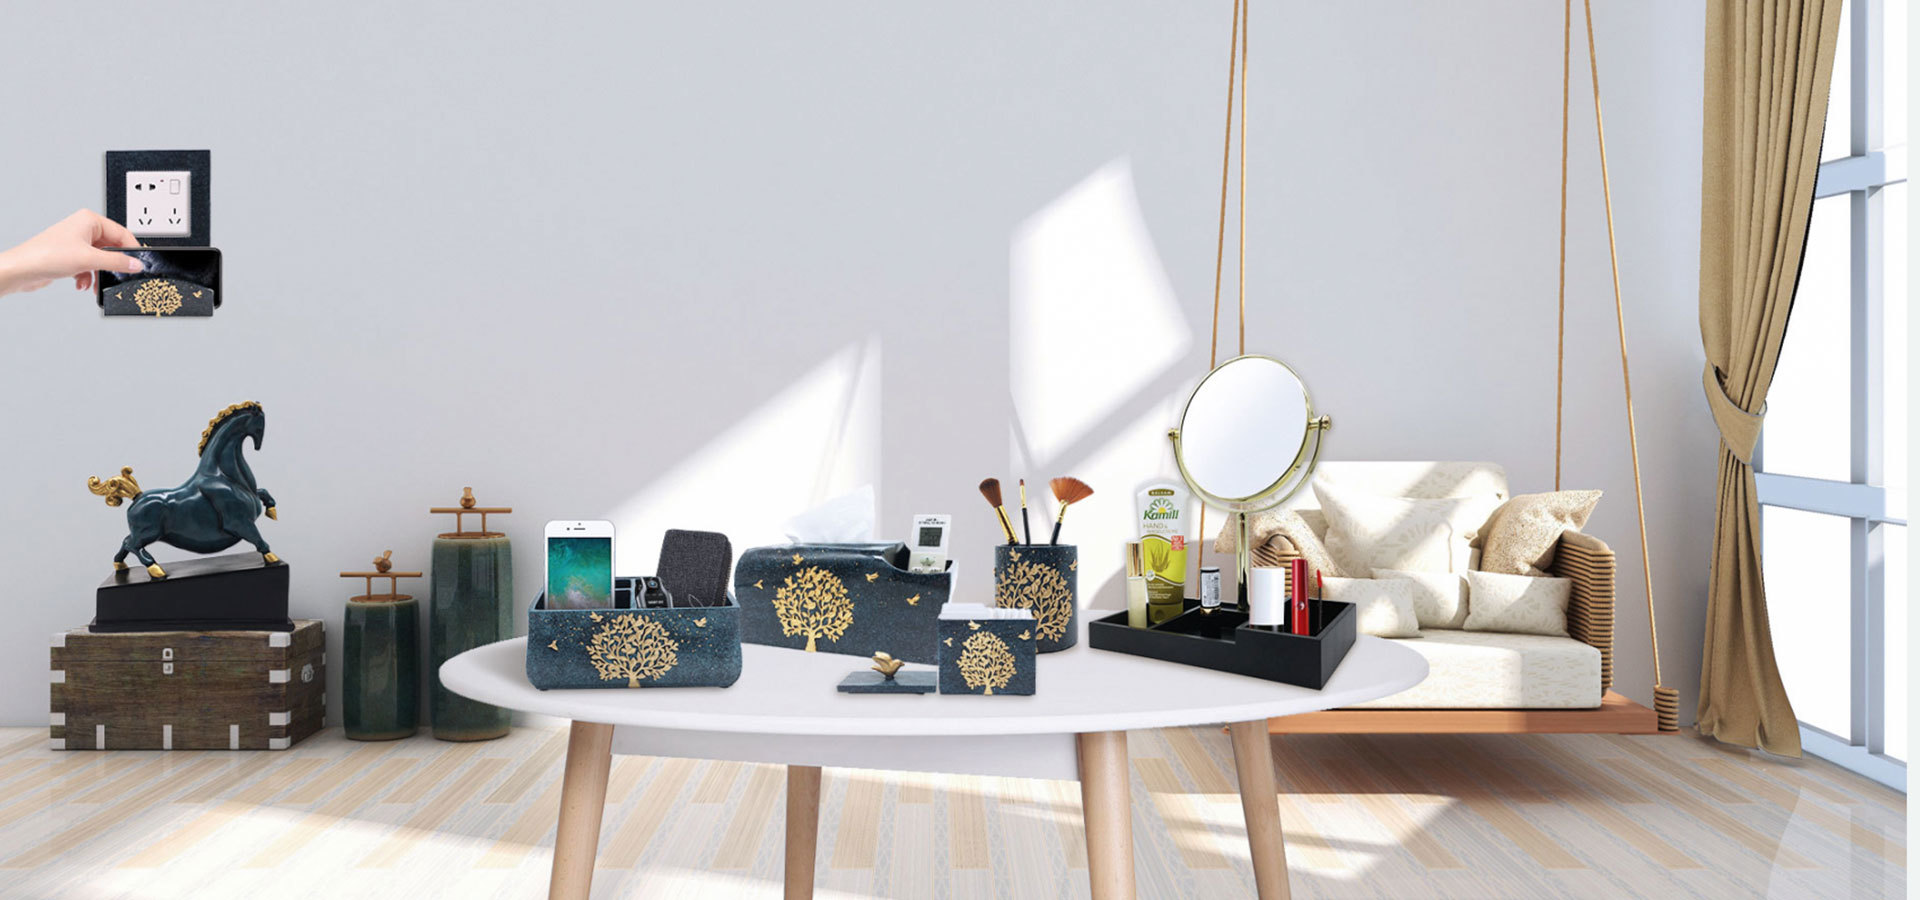 Home decoration Accessories Set for Good Life